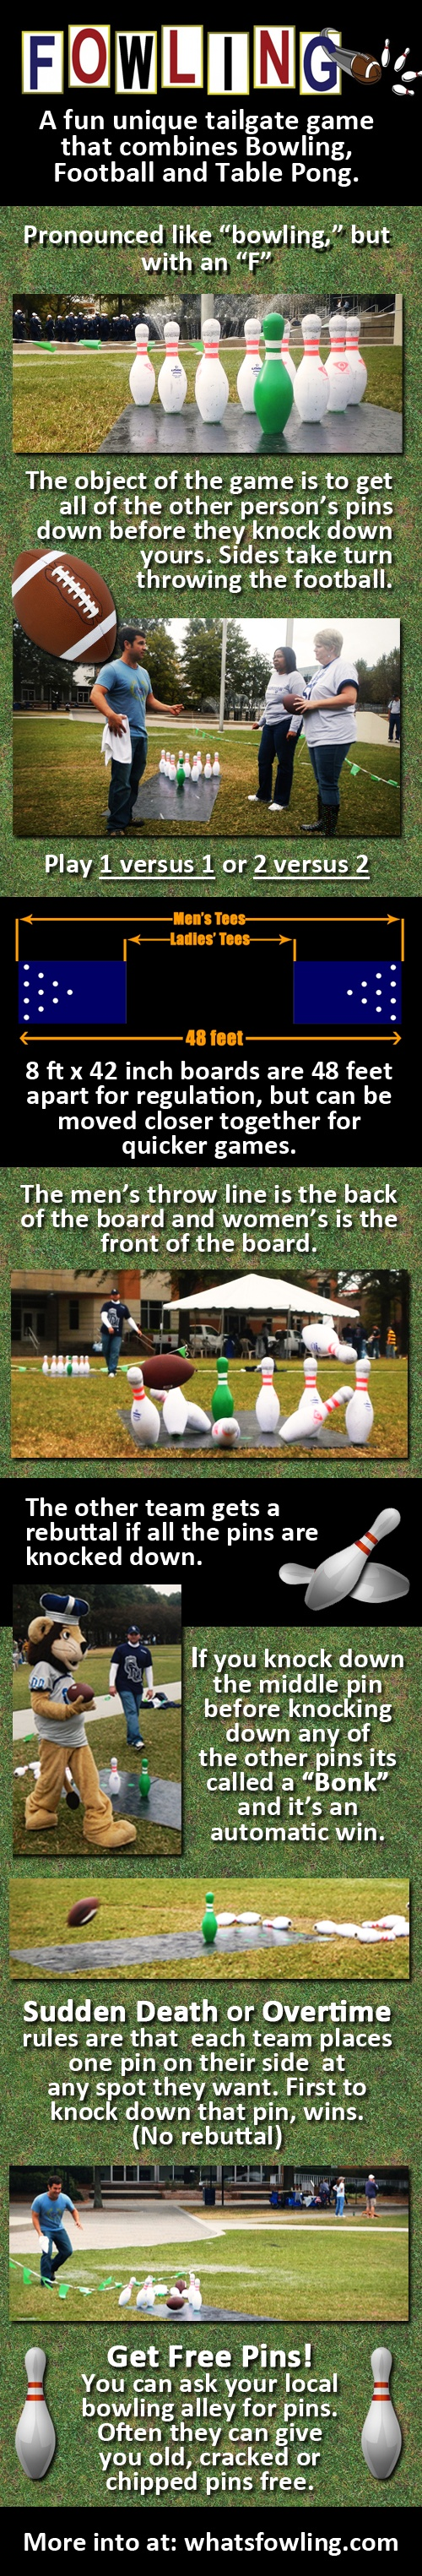 #fowling #whatsfowling Fowling is a mixture of Football and Bowling in a Horseshoes style layout. Teams of two stand at opposite ends of the lane and alternately take turns throwing a football at their opponents bowling pins. The first team to knock down all 10 pins, wins.